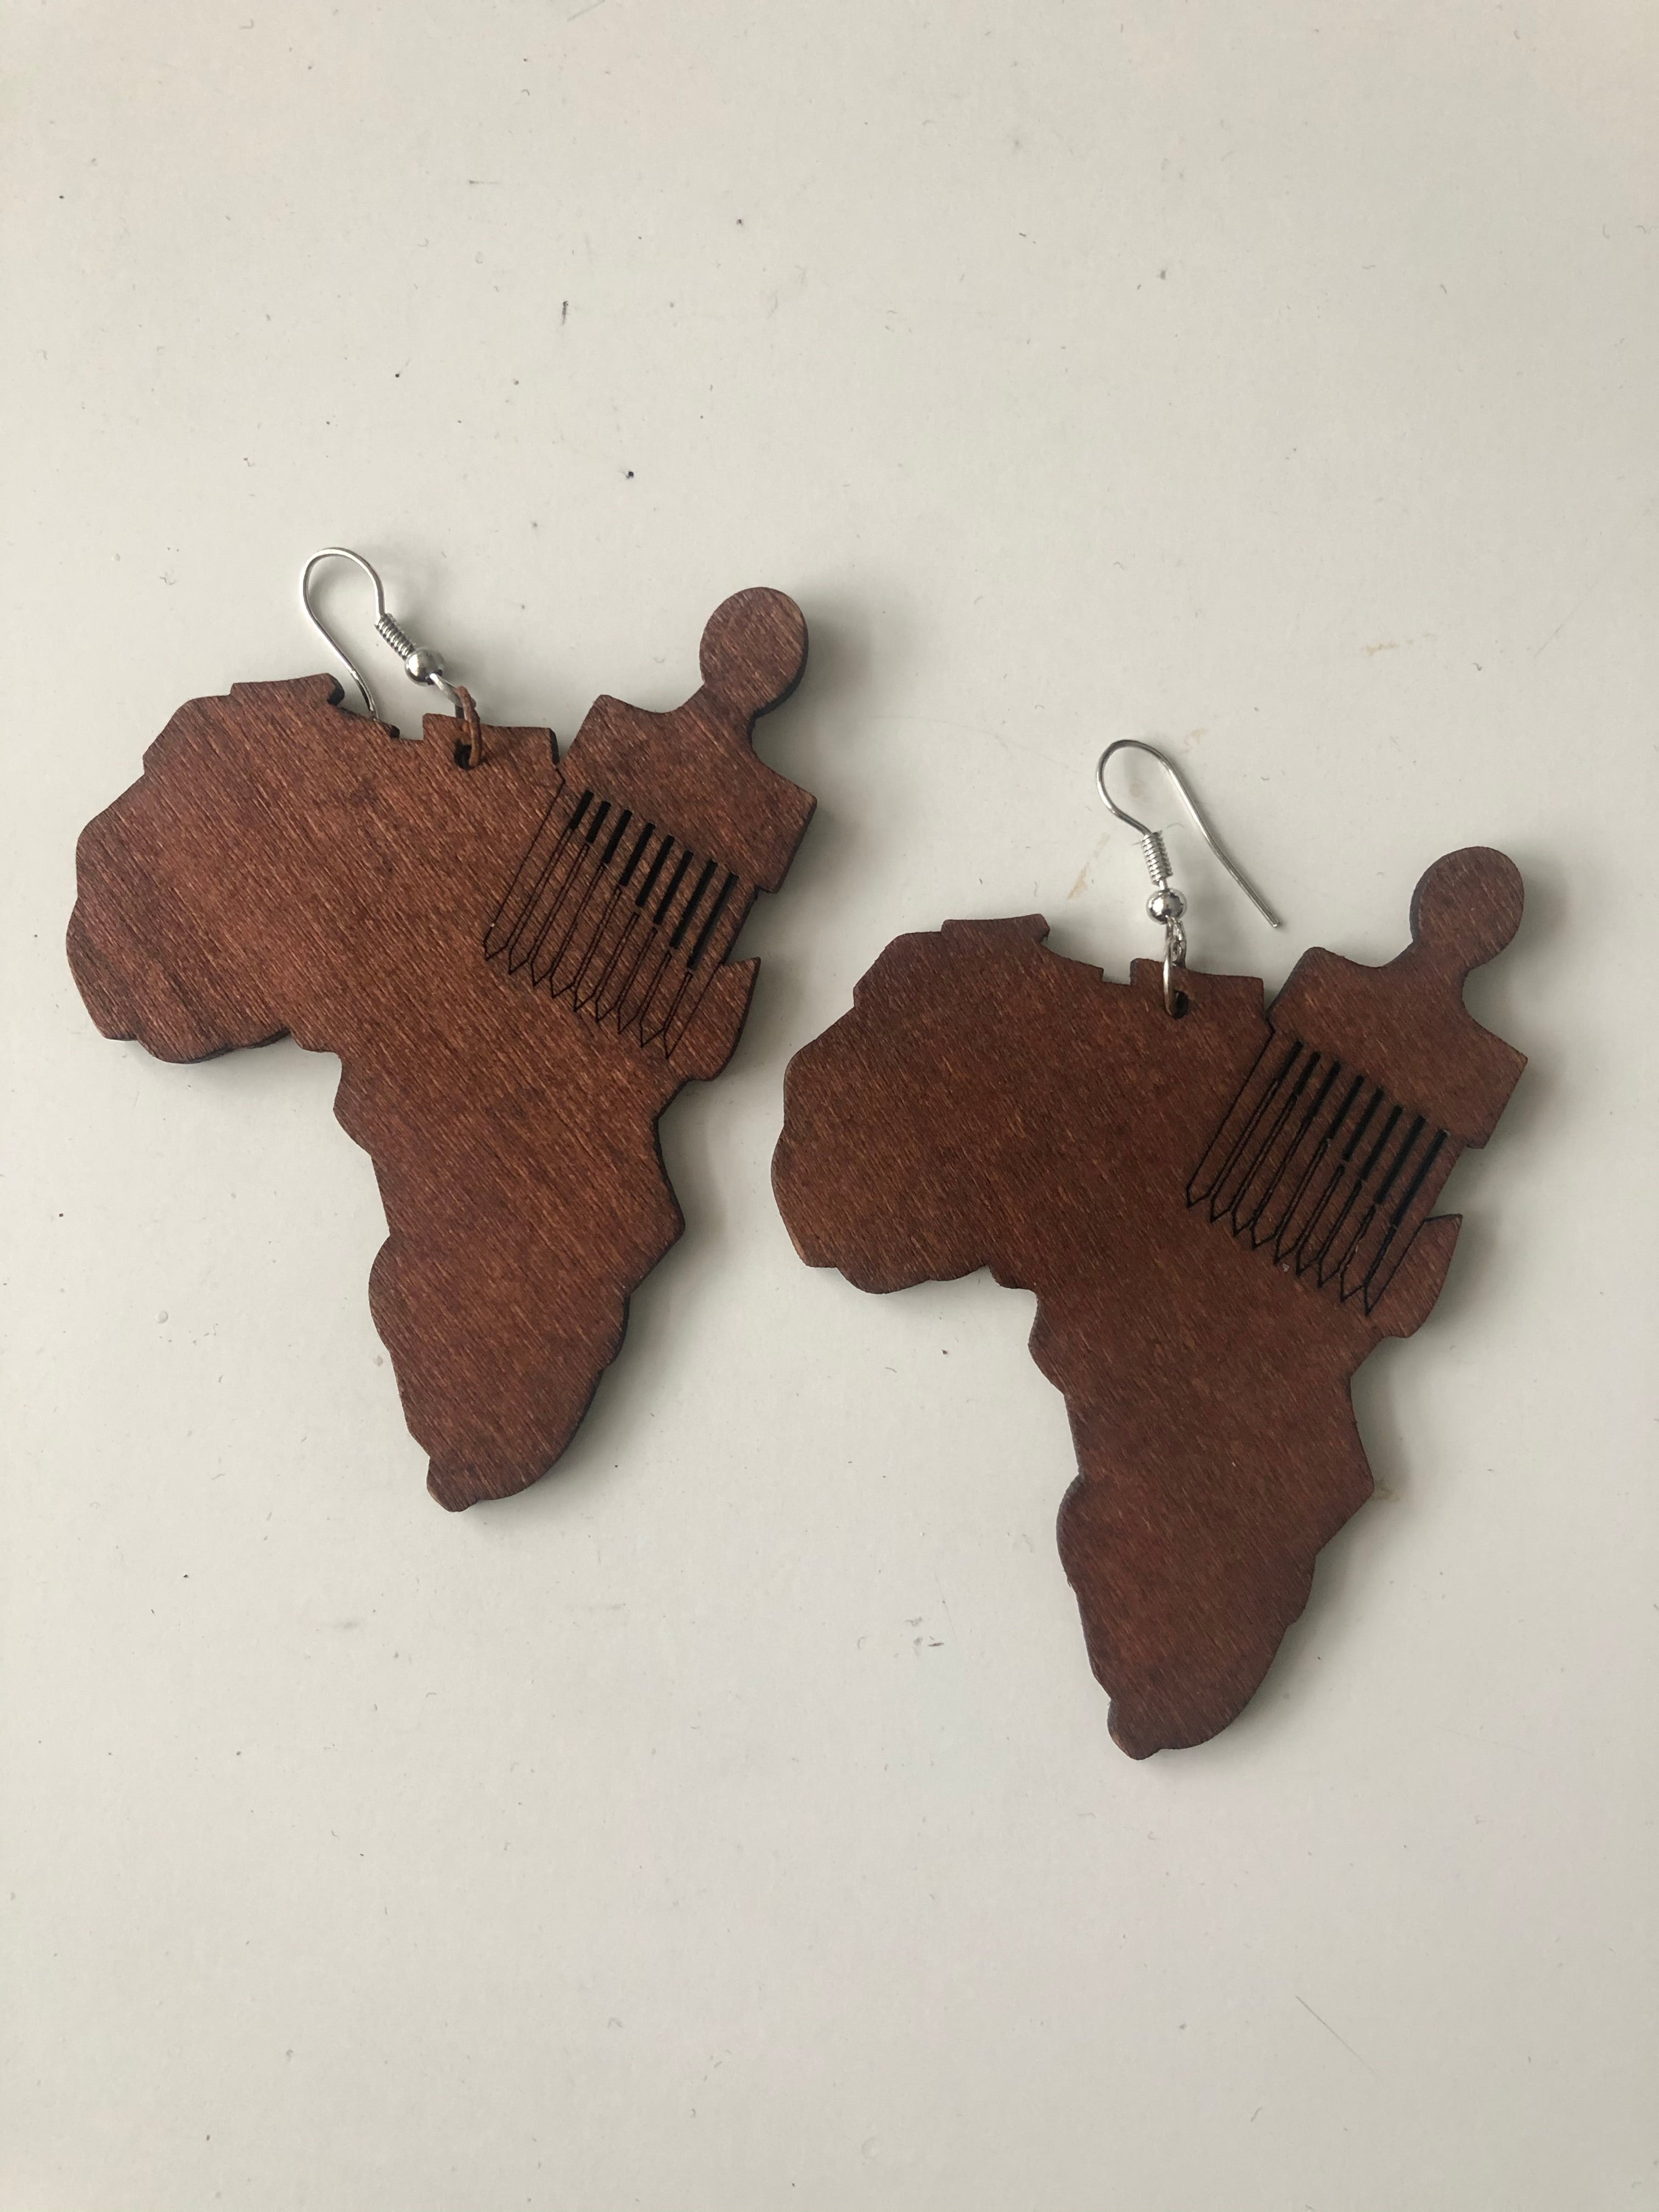 Afro comb over Africa earrings